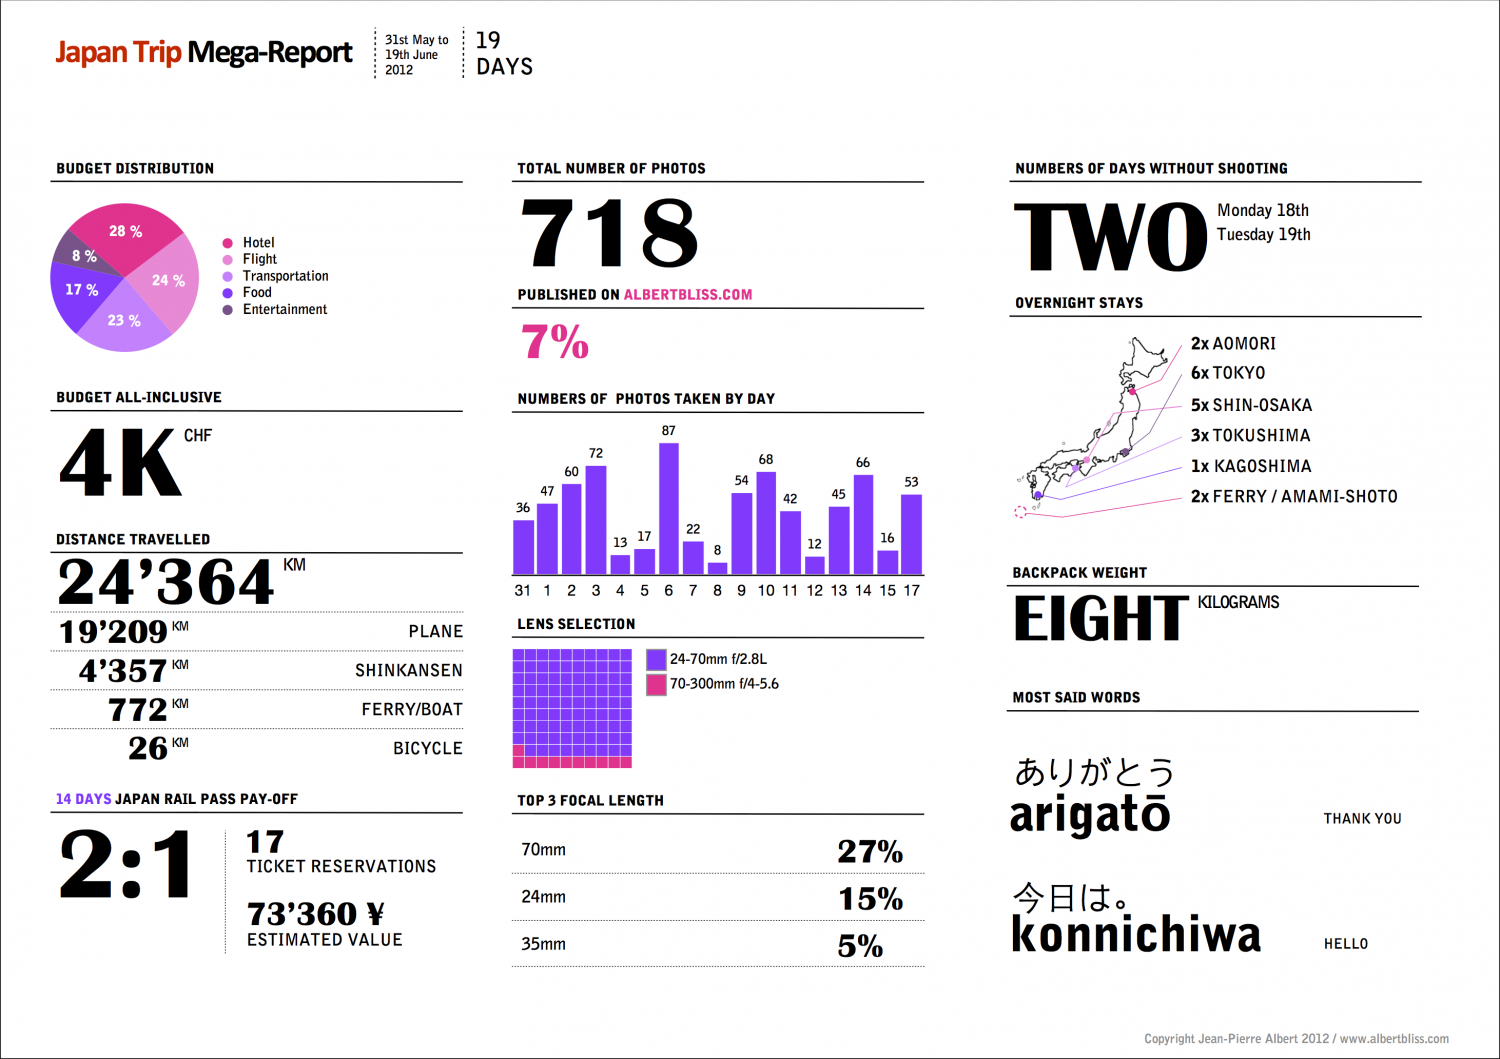 Japan Trip Mega-Report Infographic